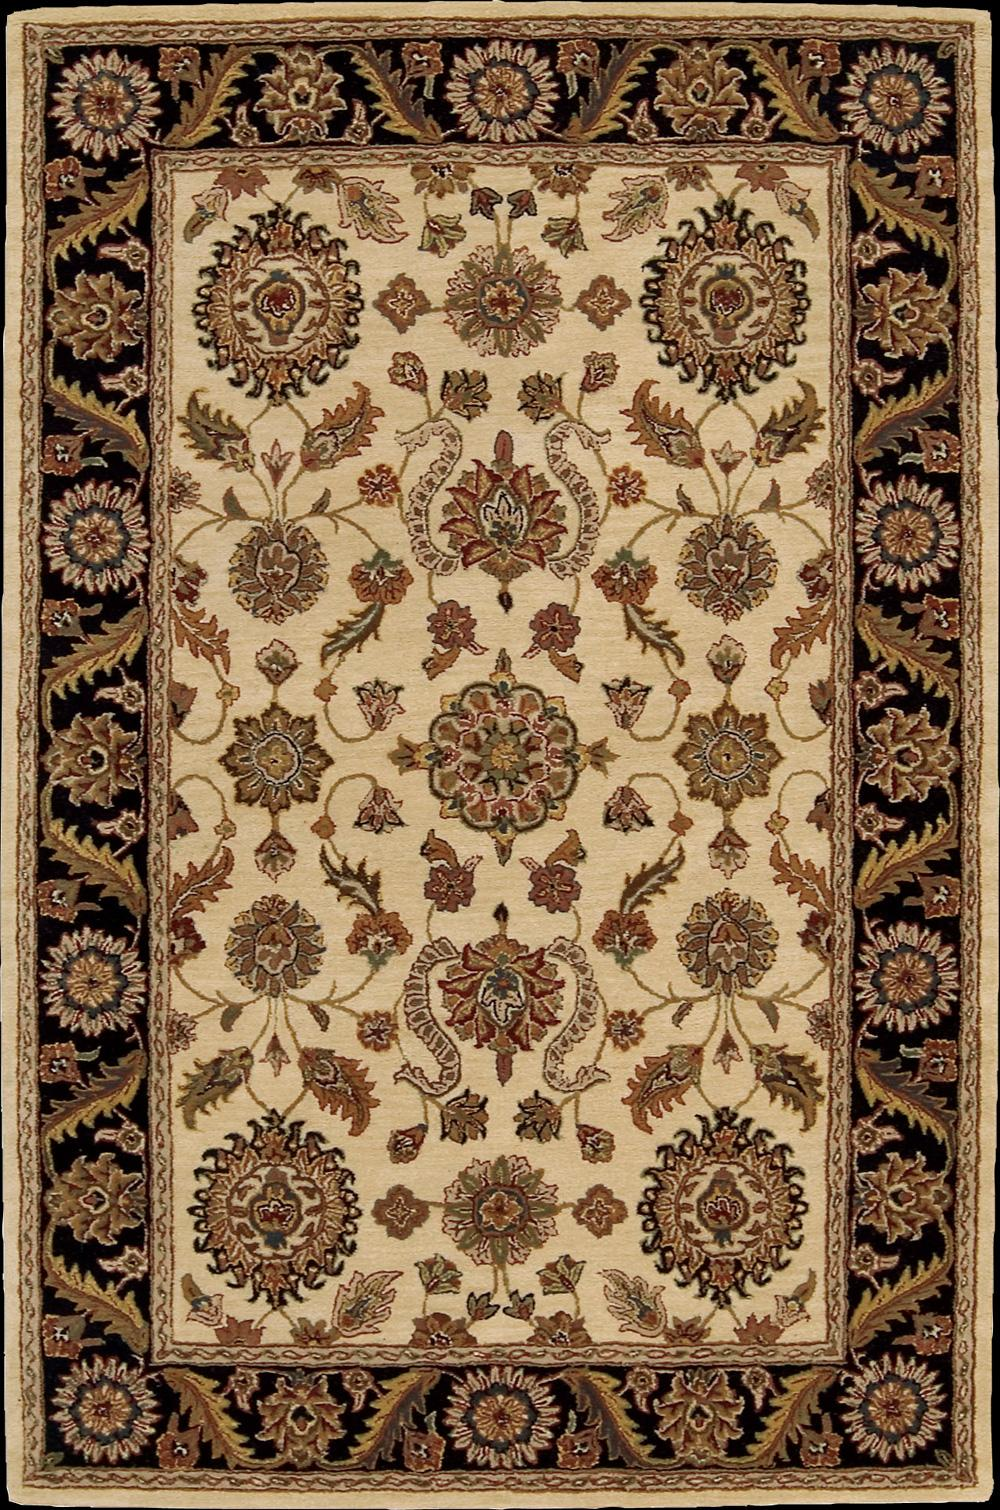 Nourison India House Area Rug 5' x 8' - Item Number: 85515